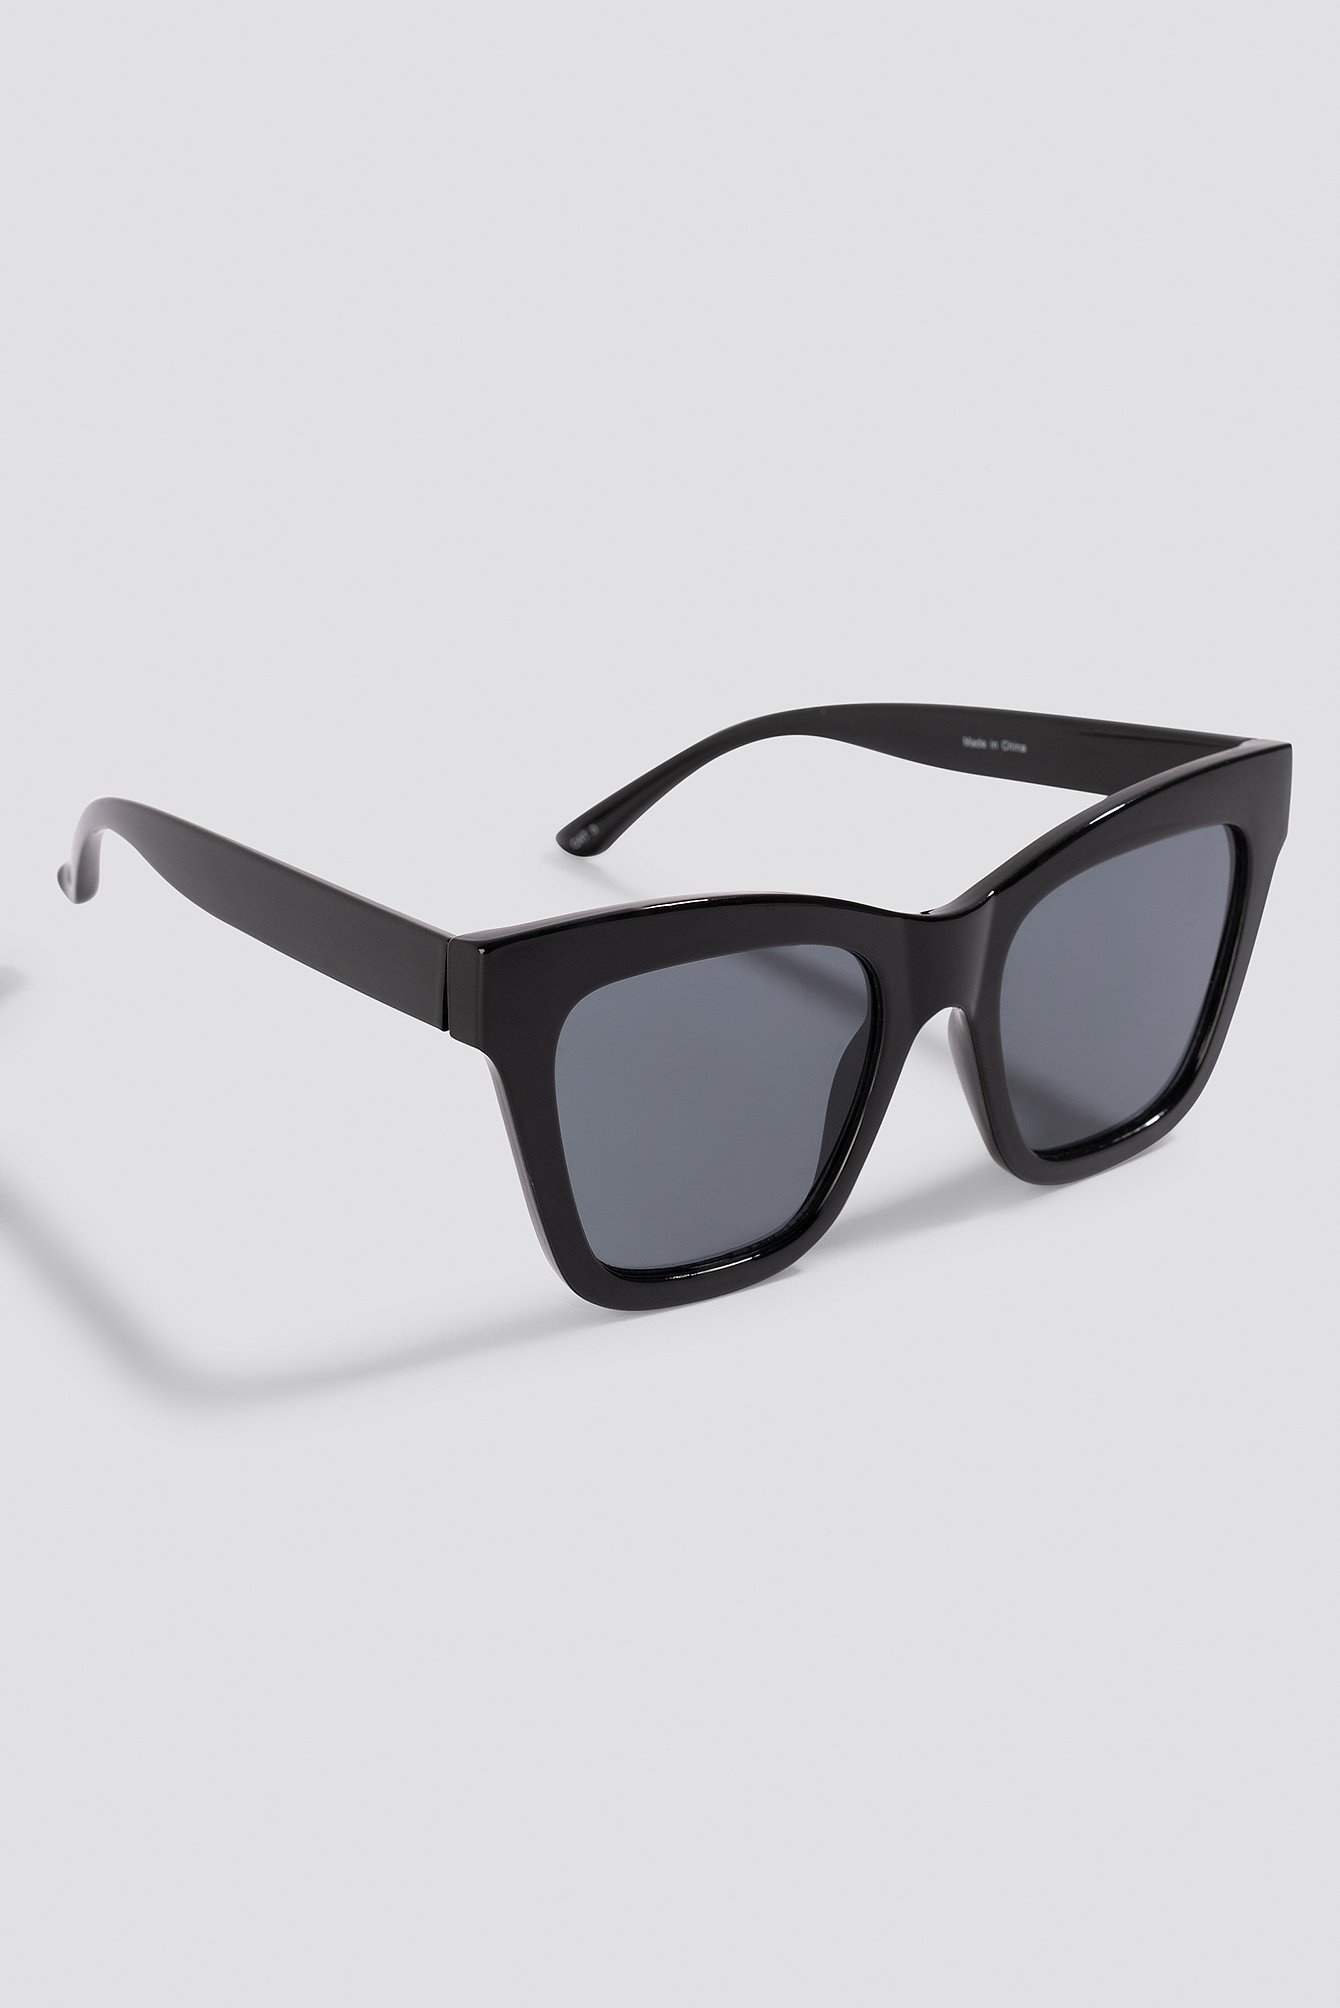 Black Square Shape Chunky Sunglasses